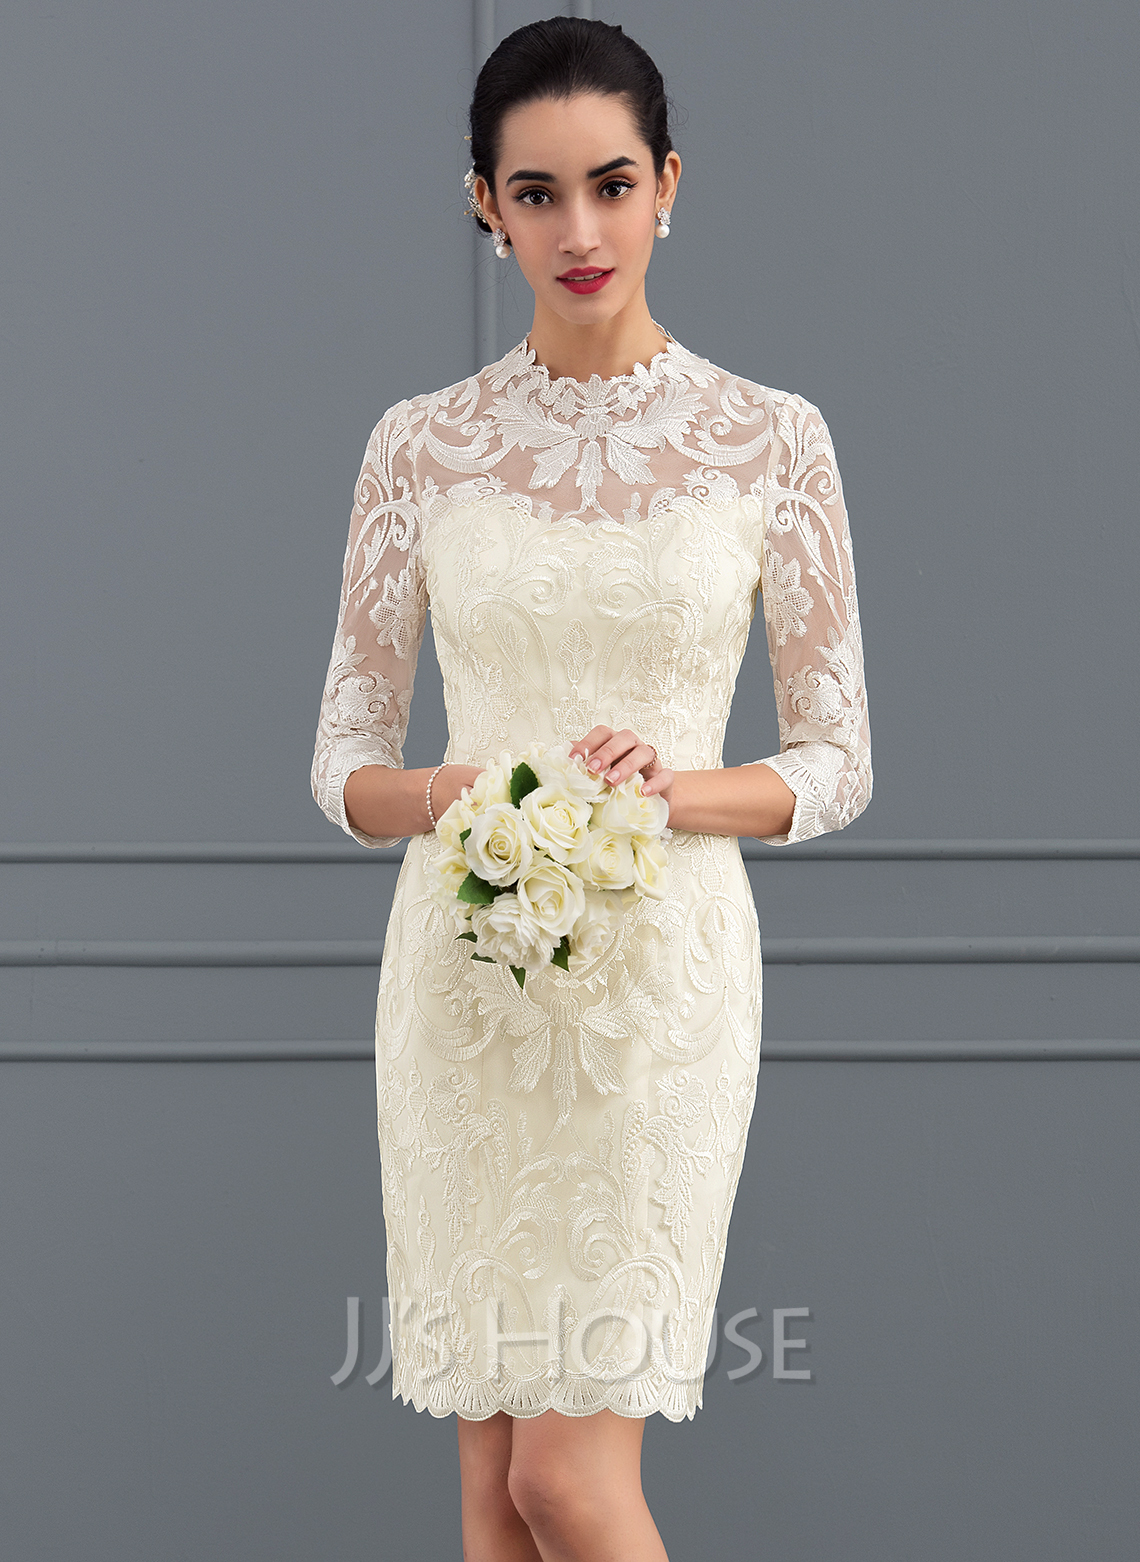 Sheath/Column High Neck Knee-Length Lace Wedding Dress (002127281 ... Wedding Reception Dress